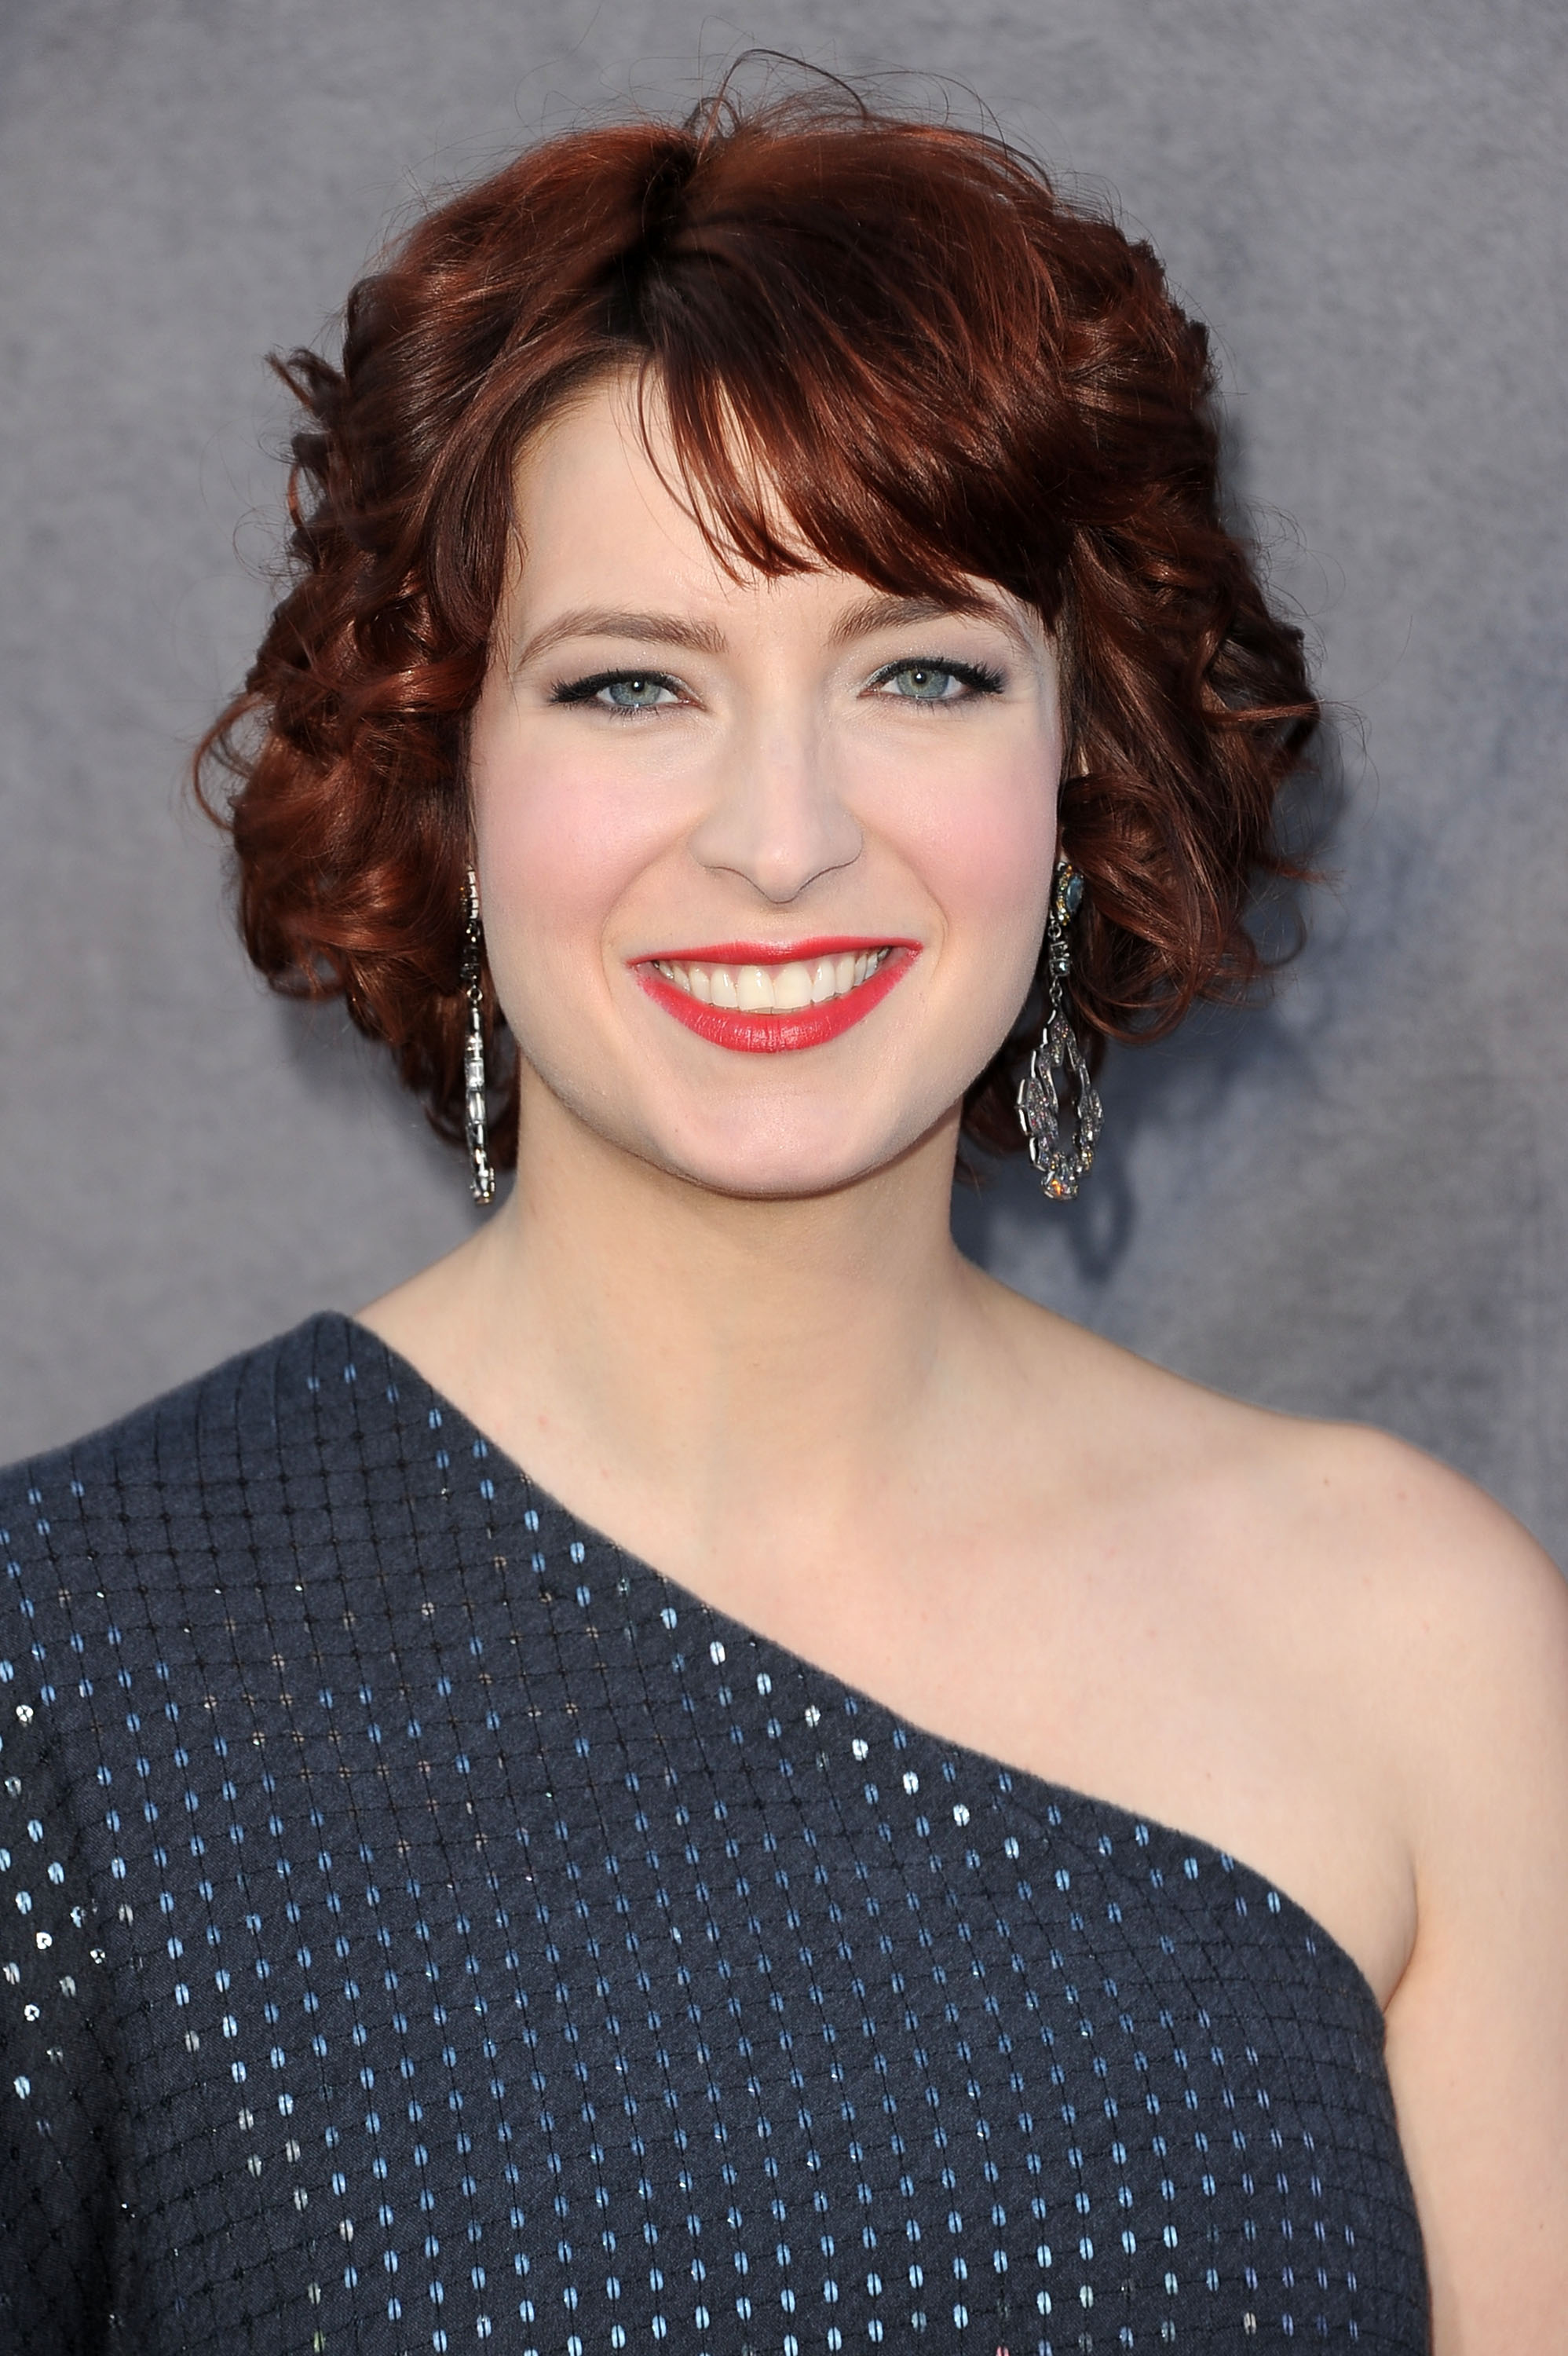 Diablo Cody arrived at the 2012 Critics' Choice Movie Awards.